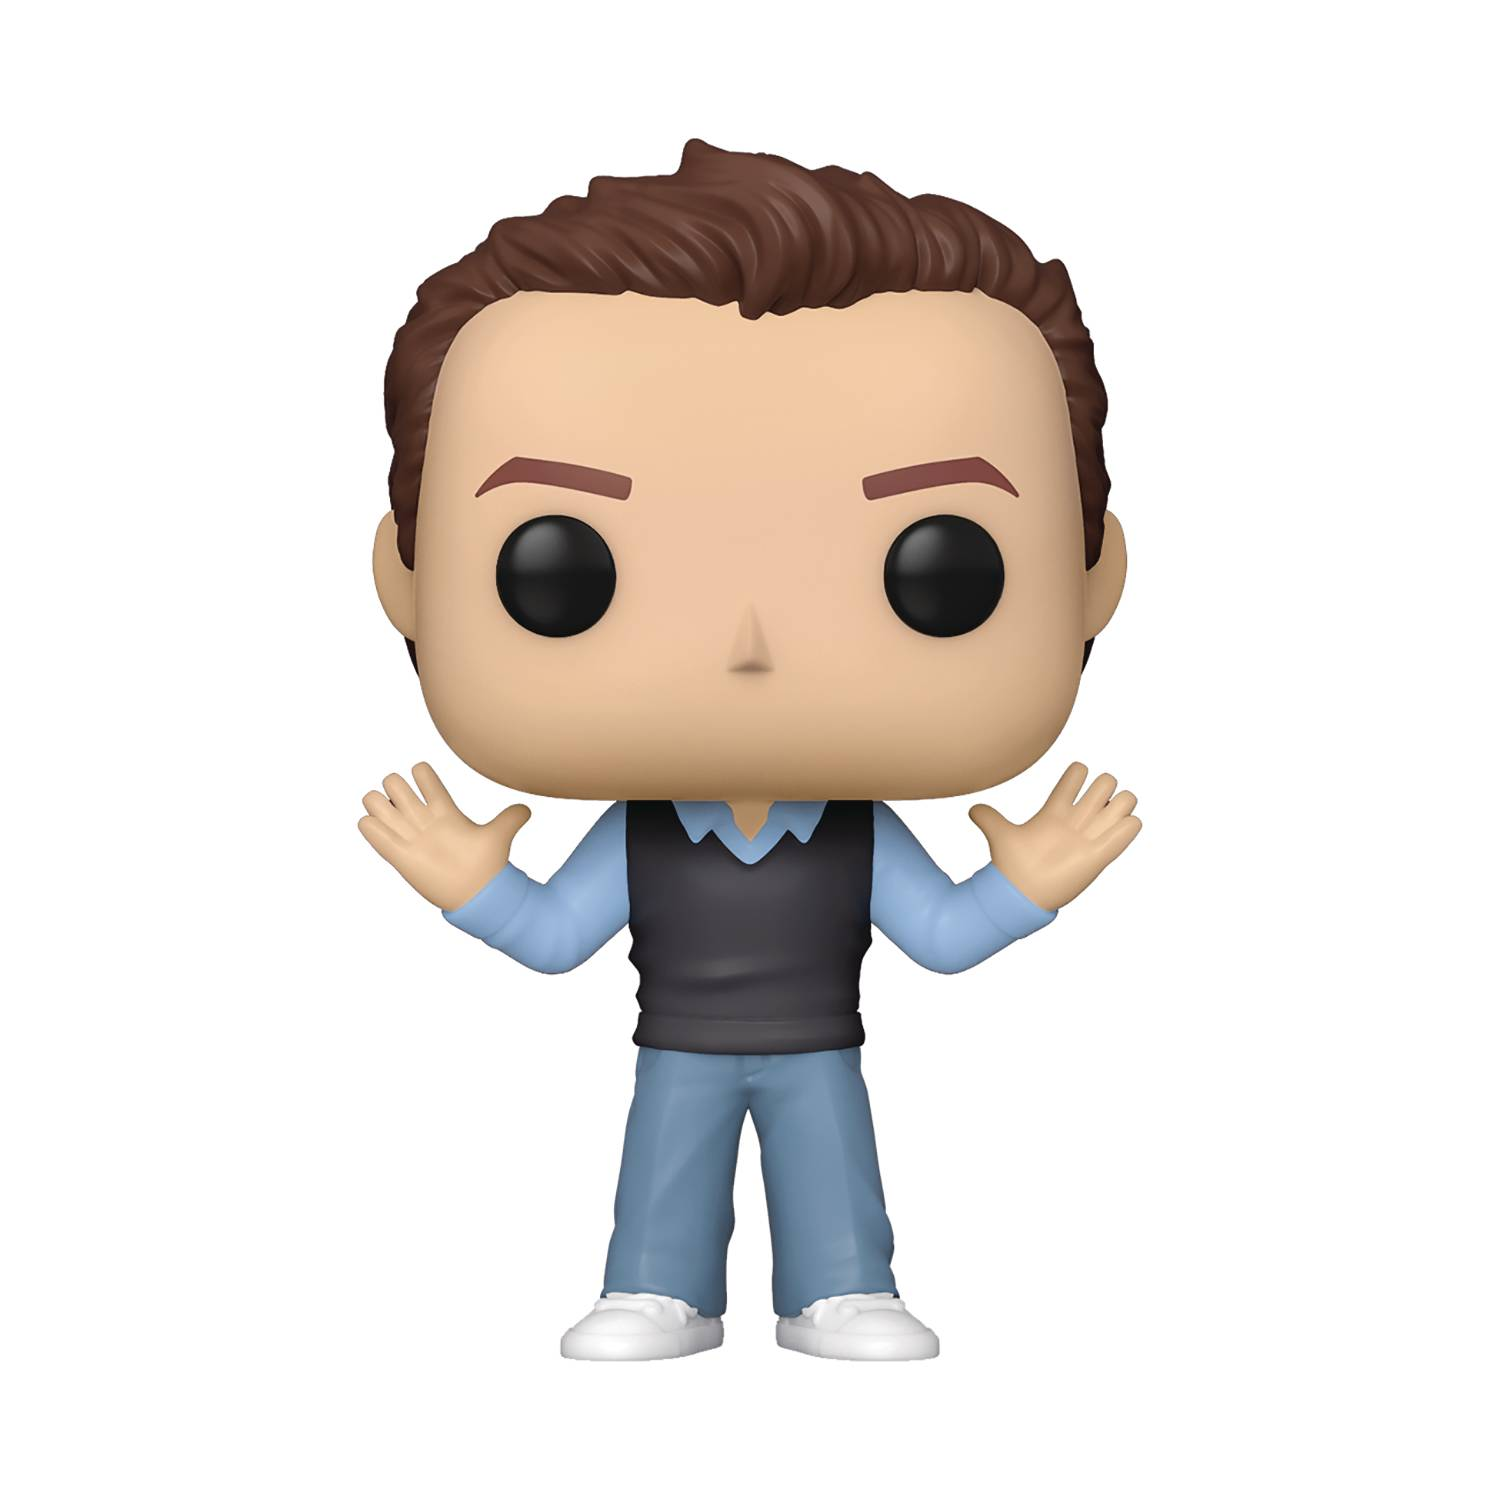 POP TV WILL & GRACE JACK MCFARLAND VIN FIG